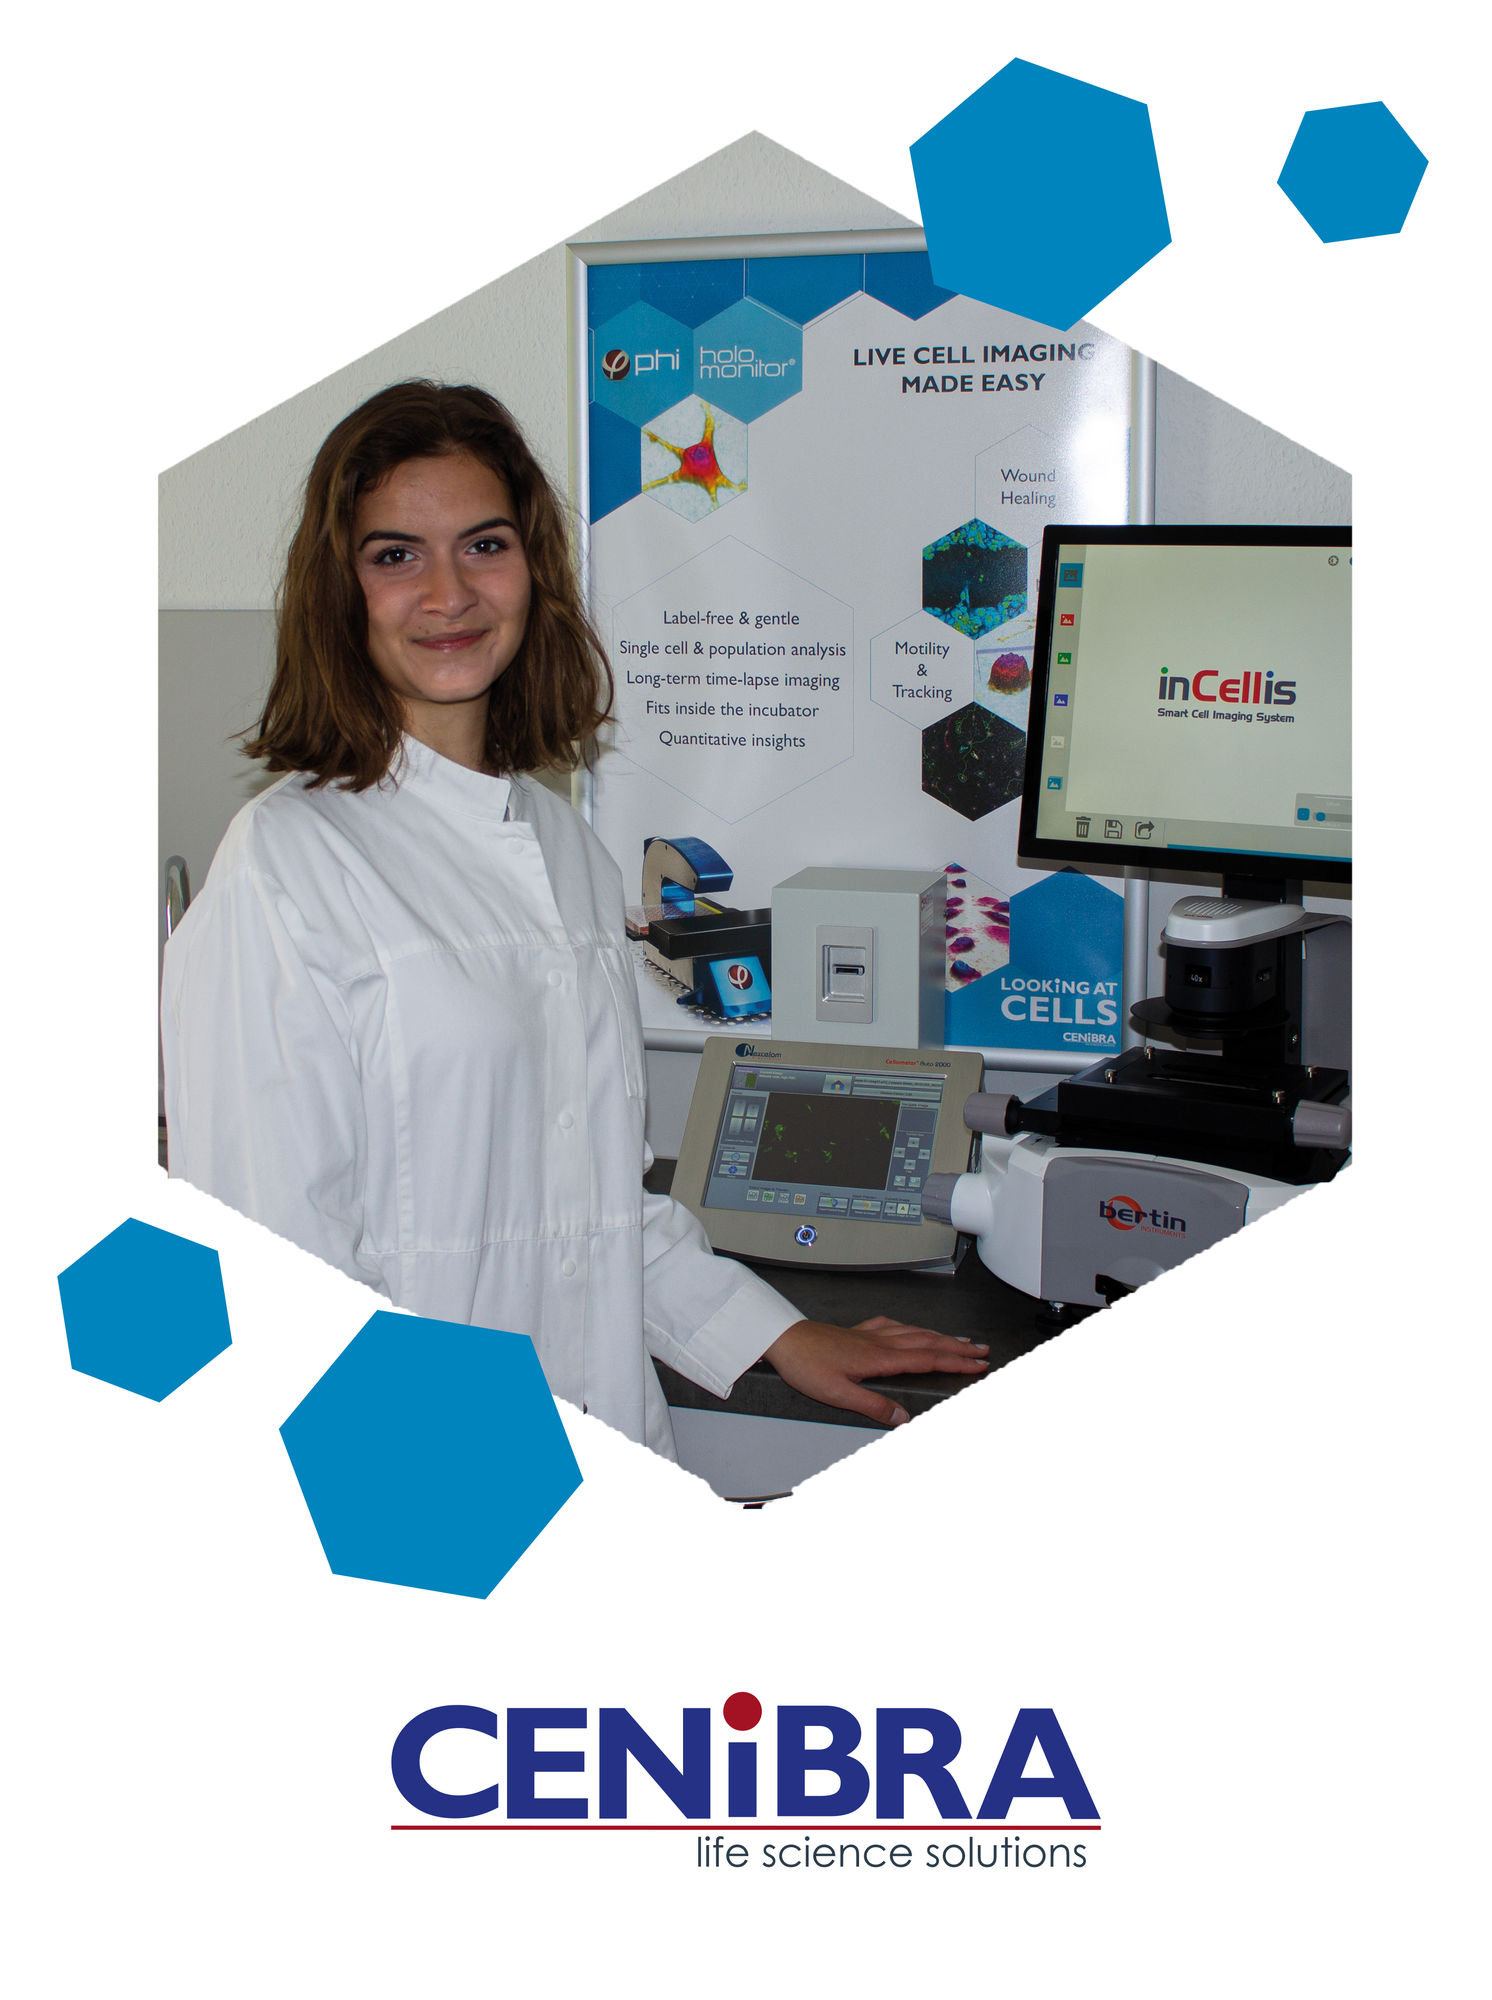 Experts for Cytometry, Cell Imaging, Cell Count, Confocal Imaging, Cell Microscopy, Holographic Imaging